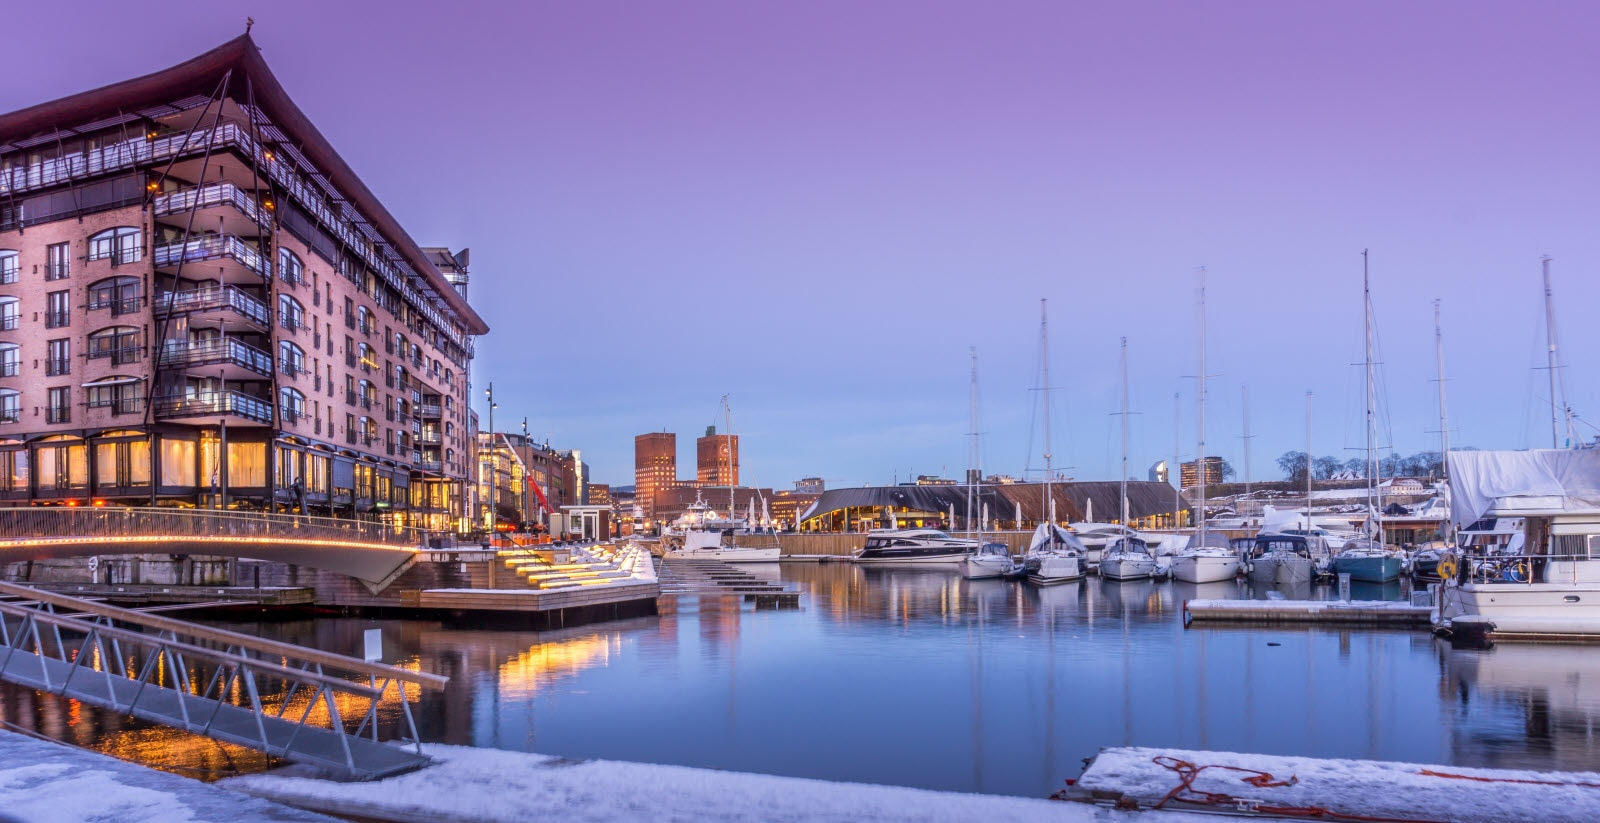 Aker Brygge on a winter day